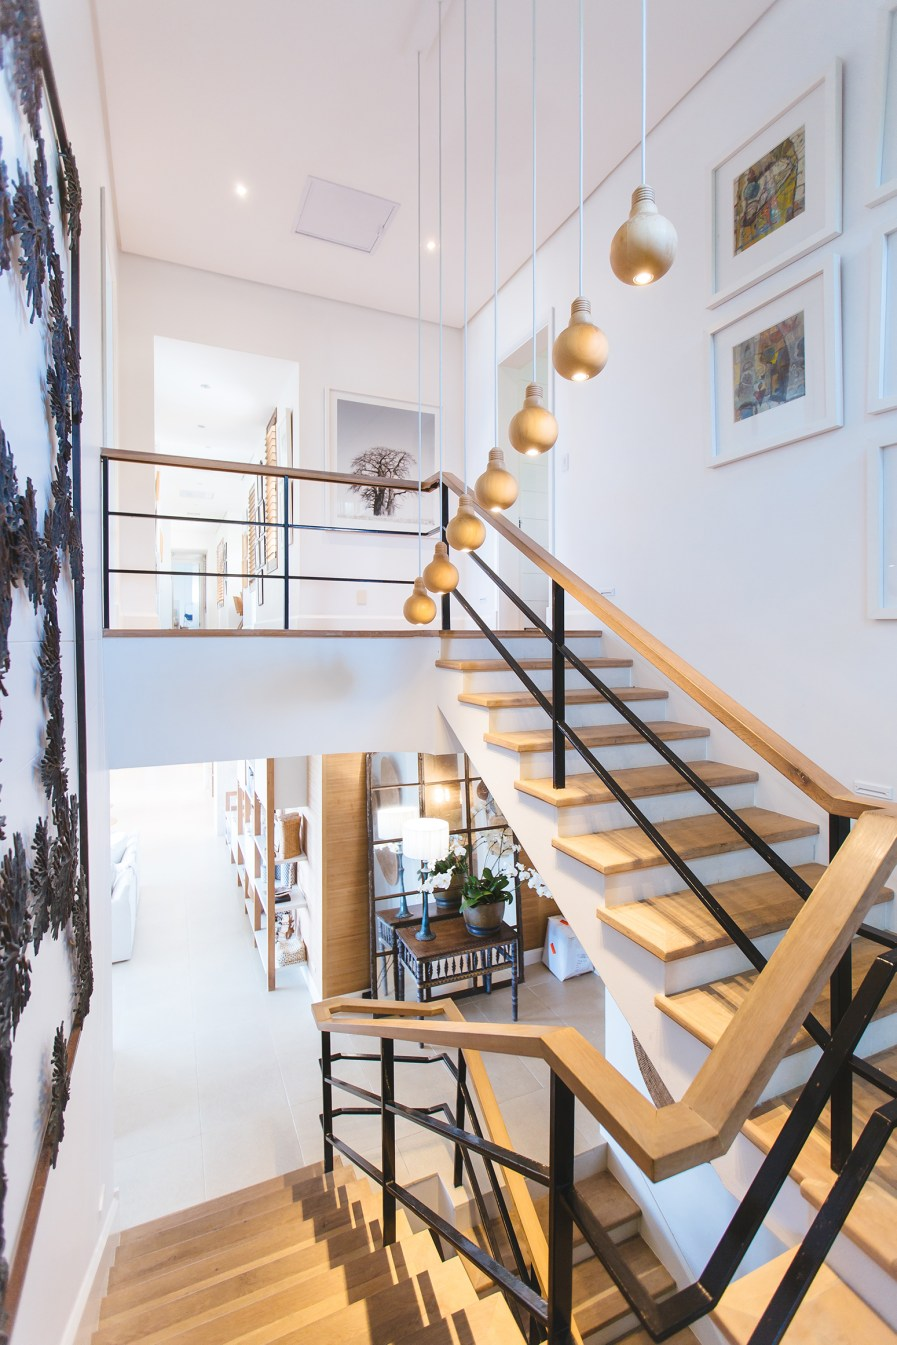 An open staircase leading up to a loft space